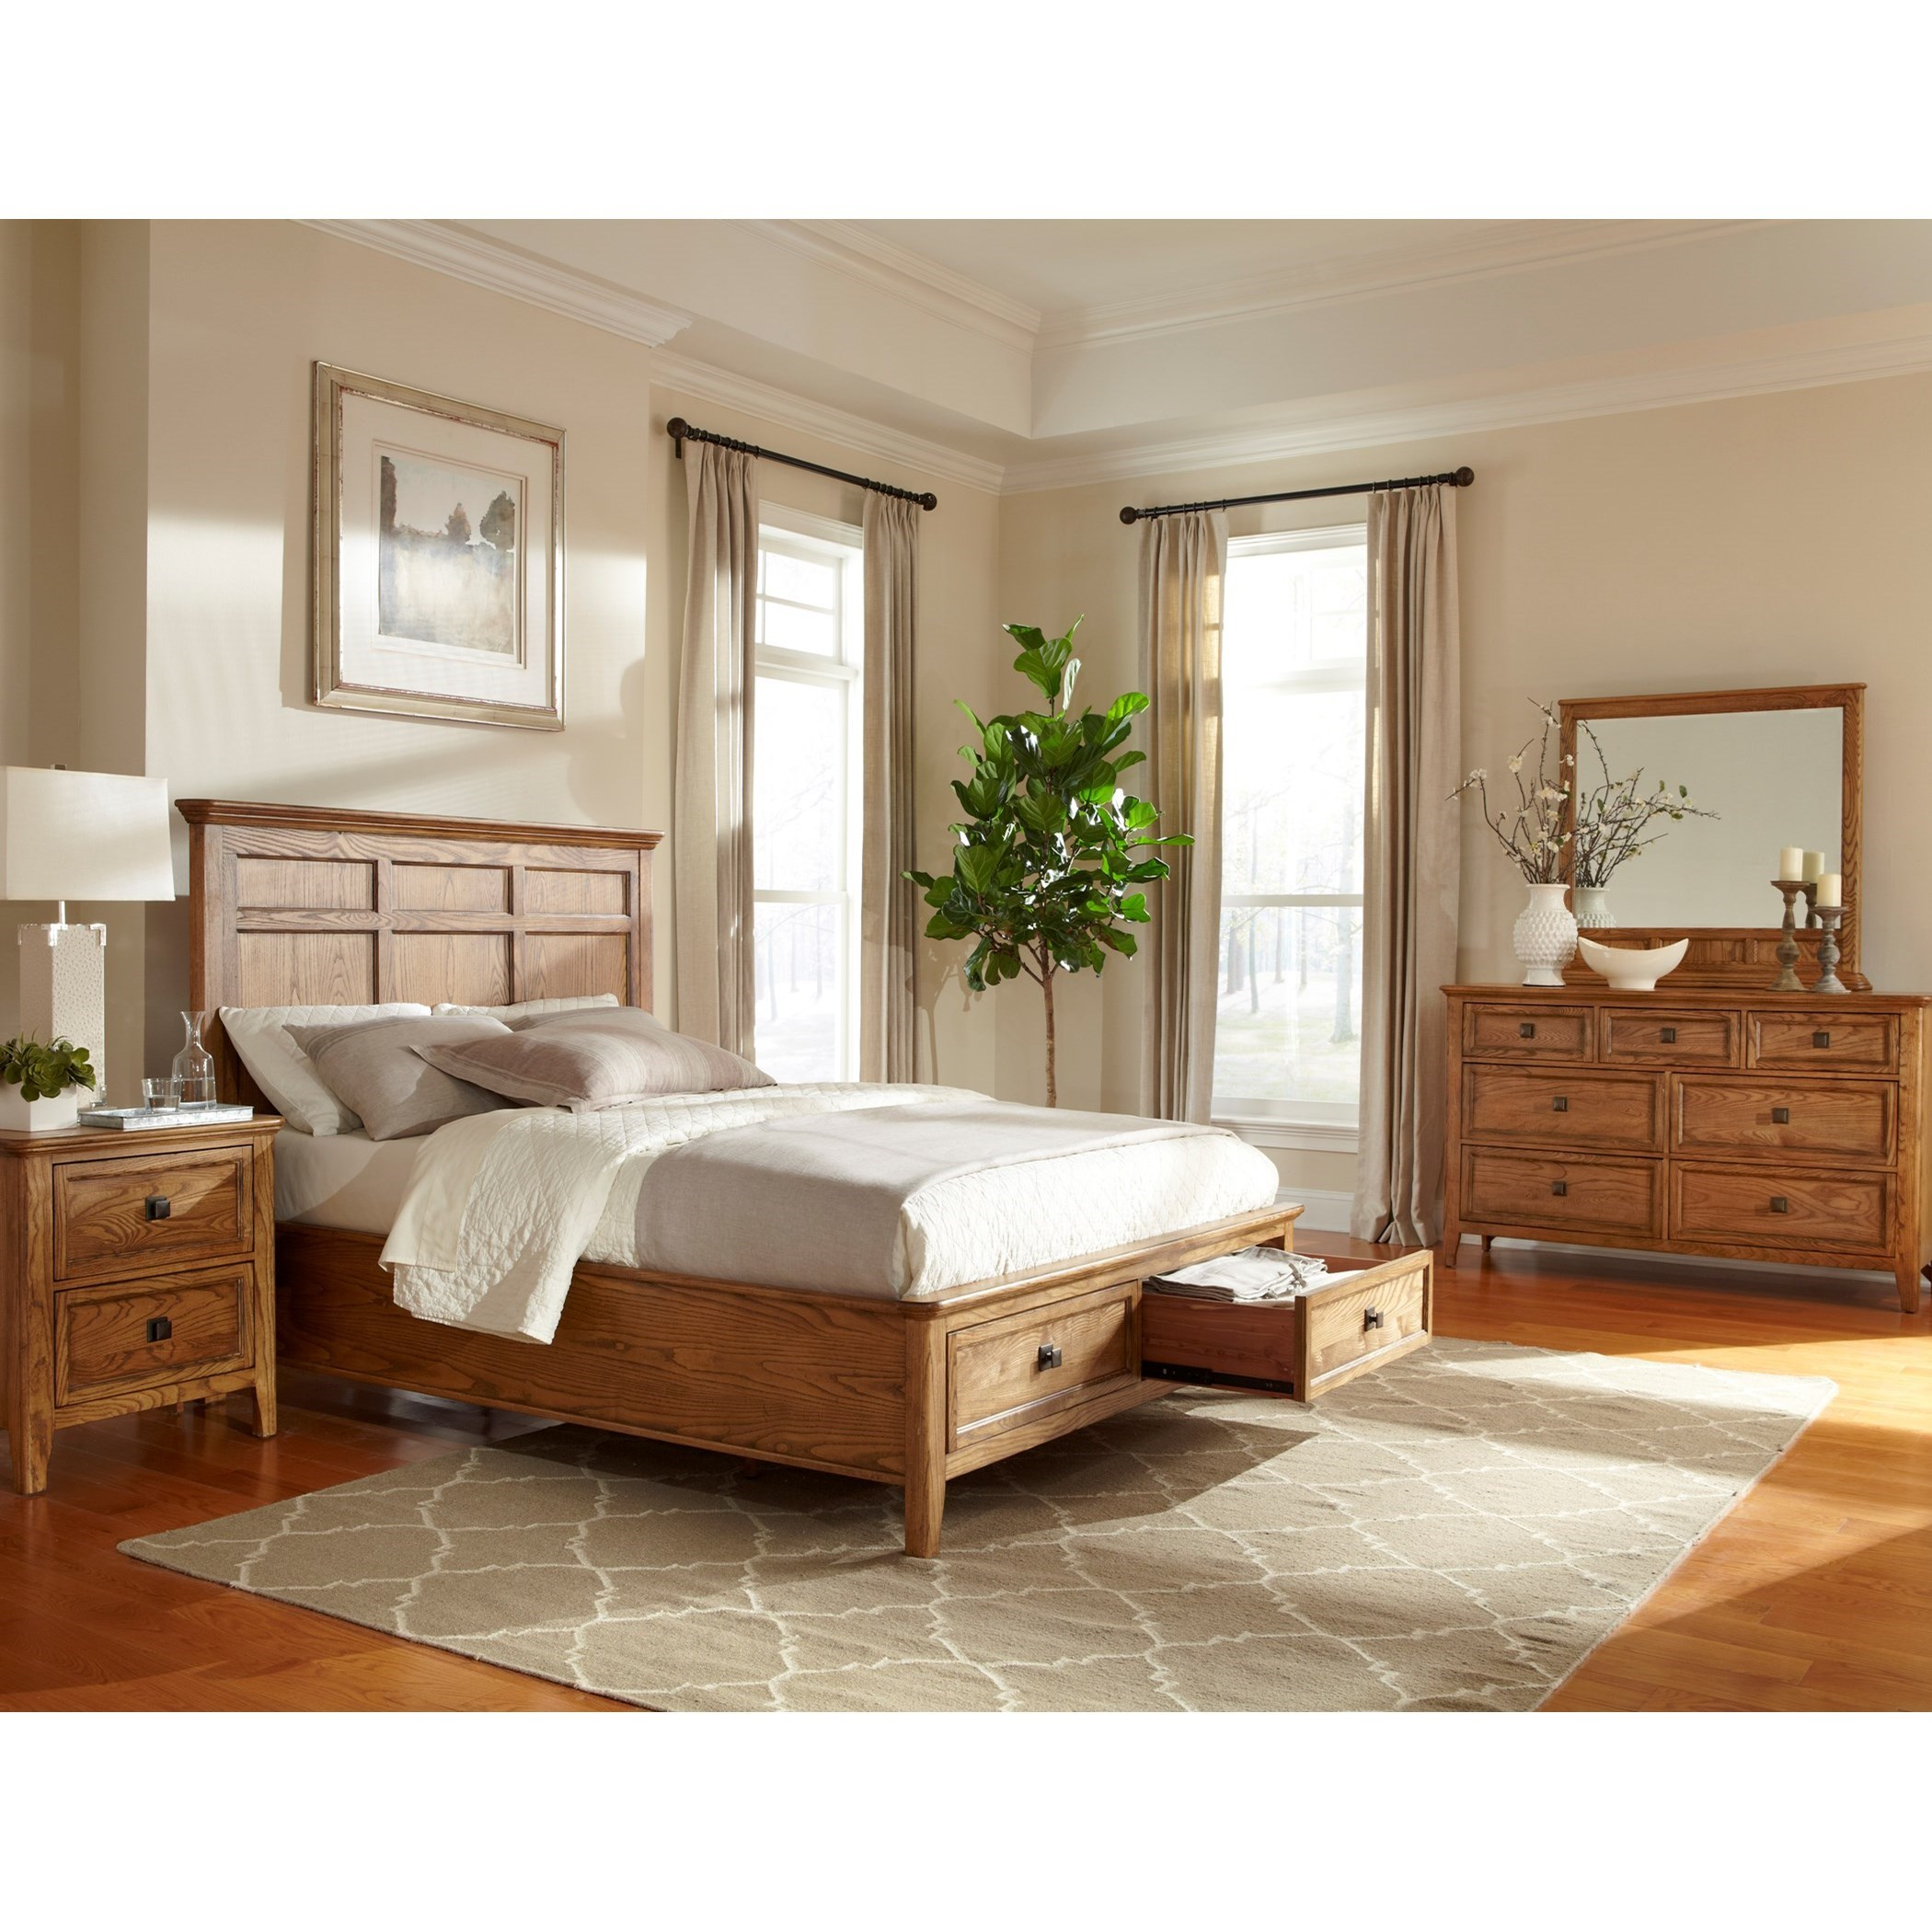 Intercon Alta King Bedroom Group - Item Number: AL K Bedroom Group 2